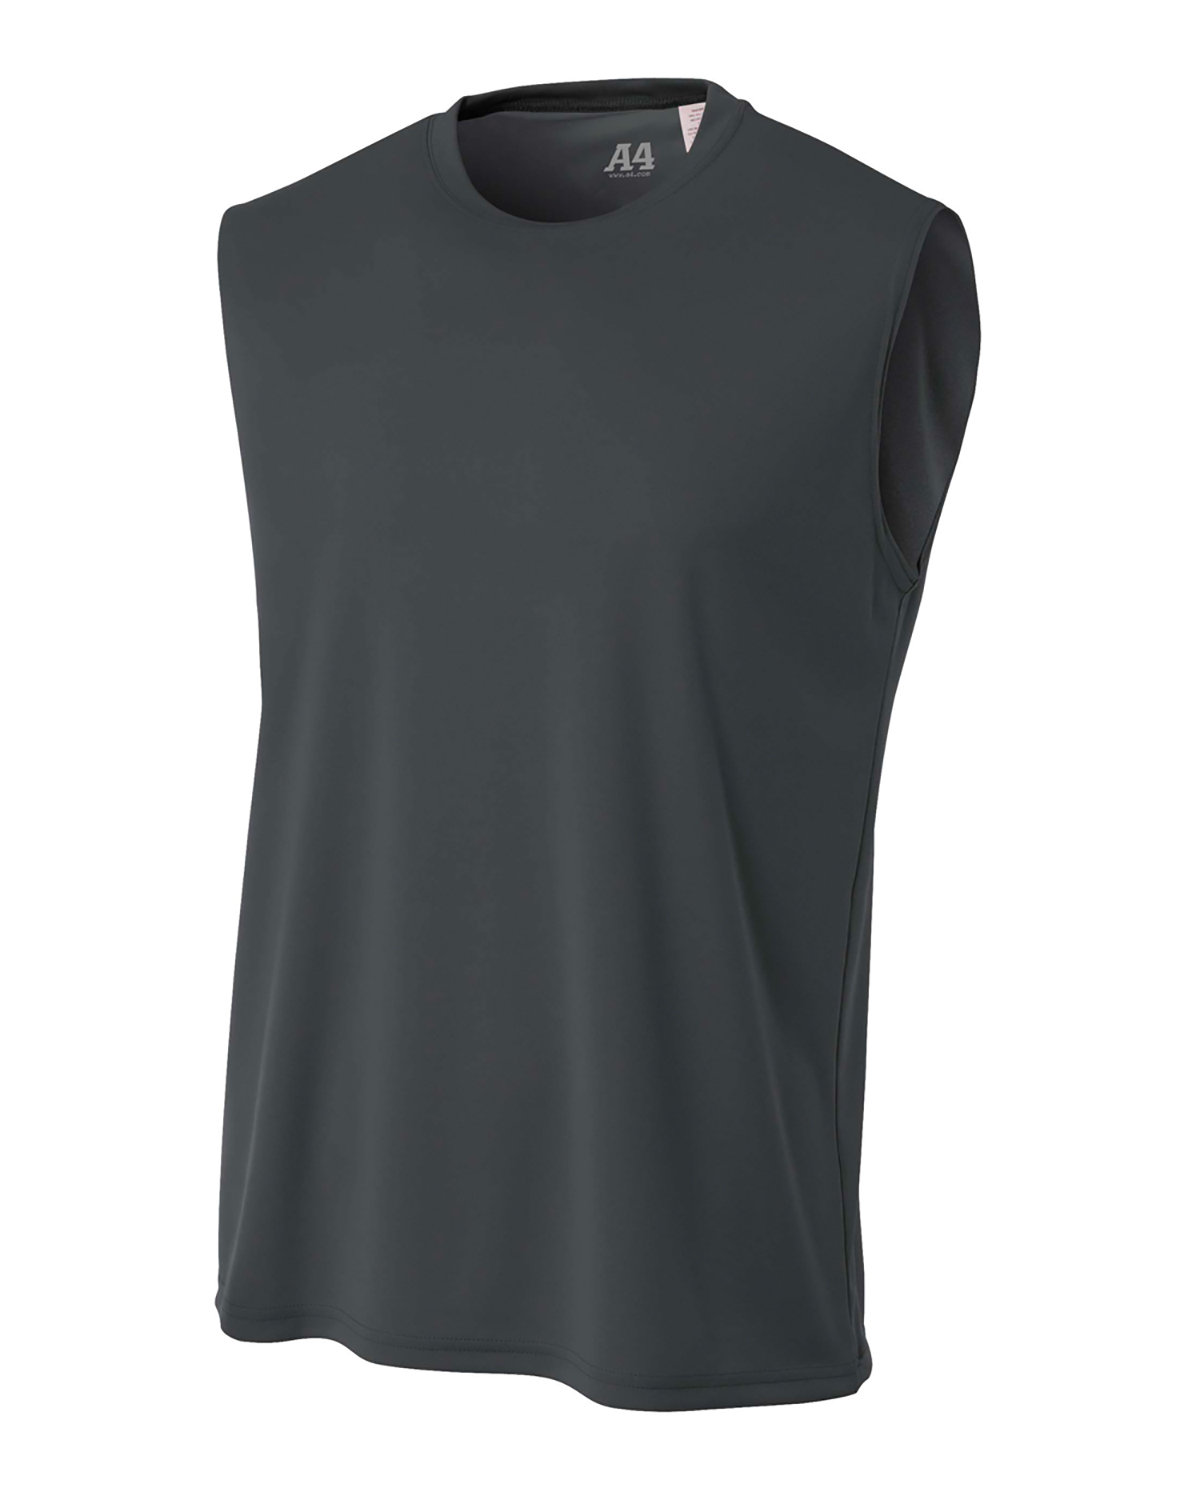 A4 Men's Cooling Performance Muscle T-Shirt GRAPHITE